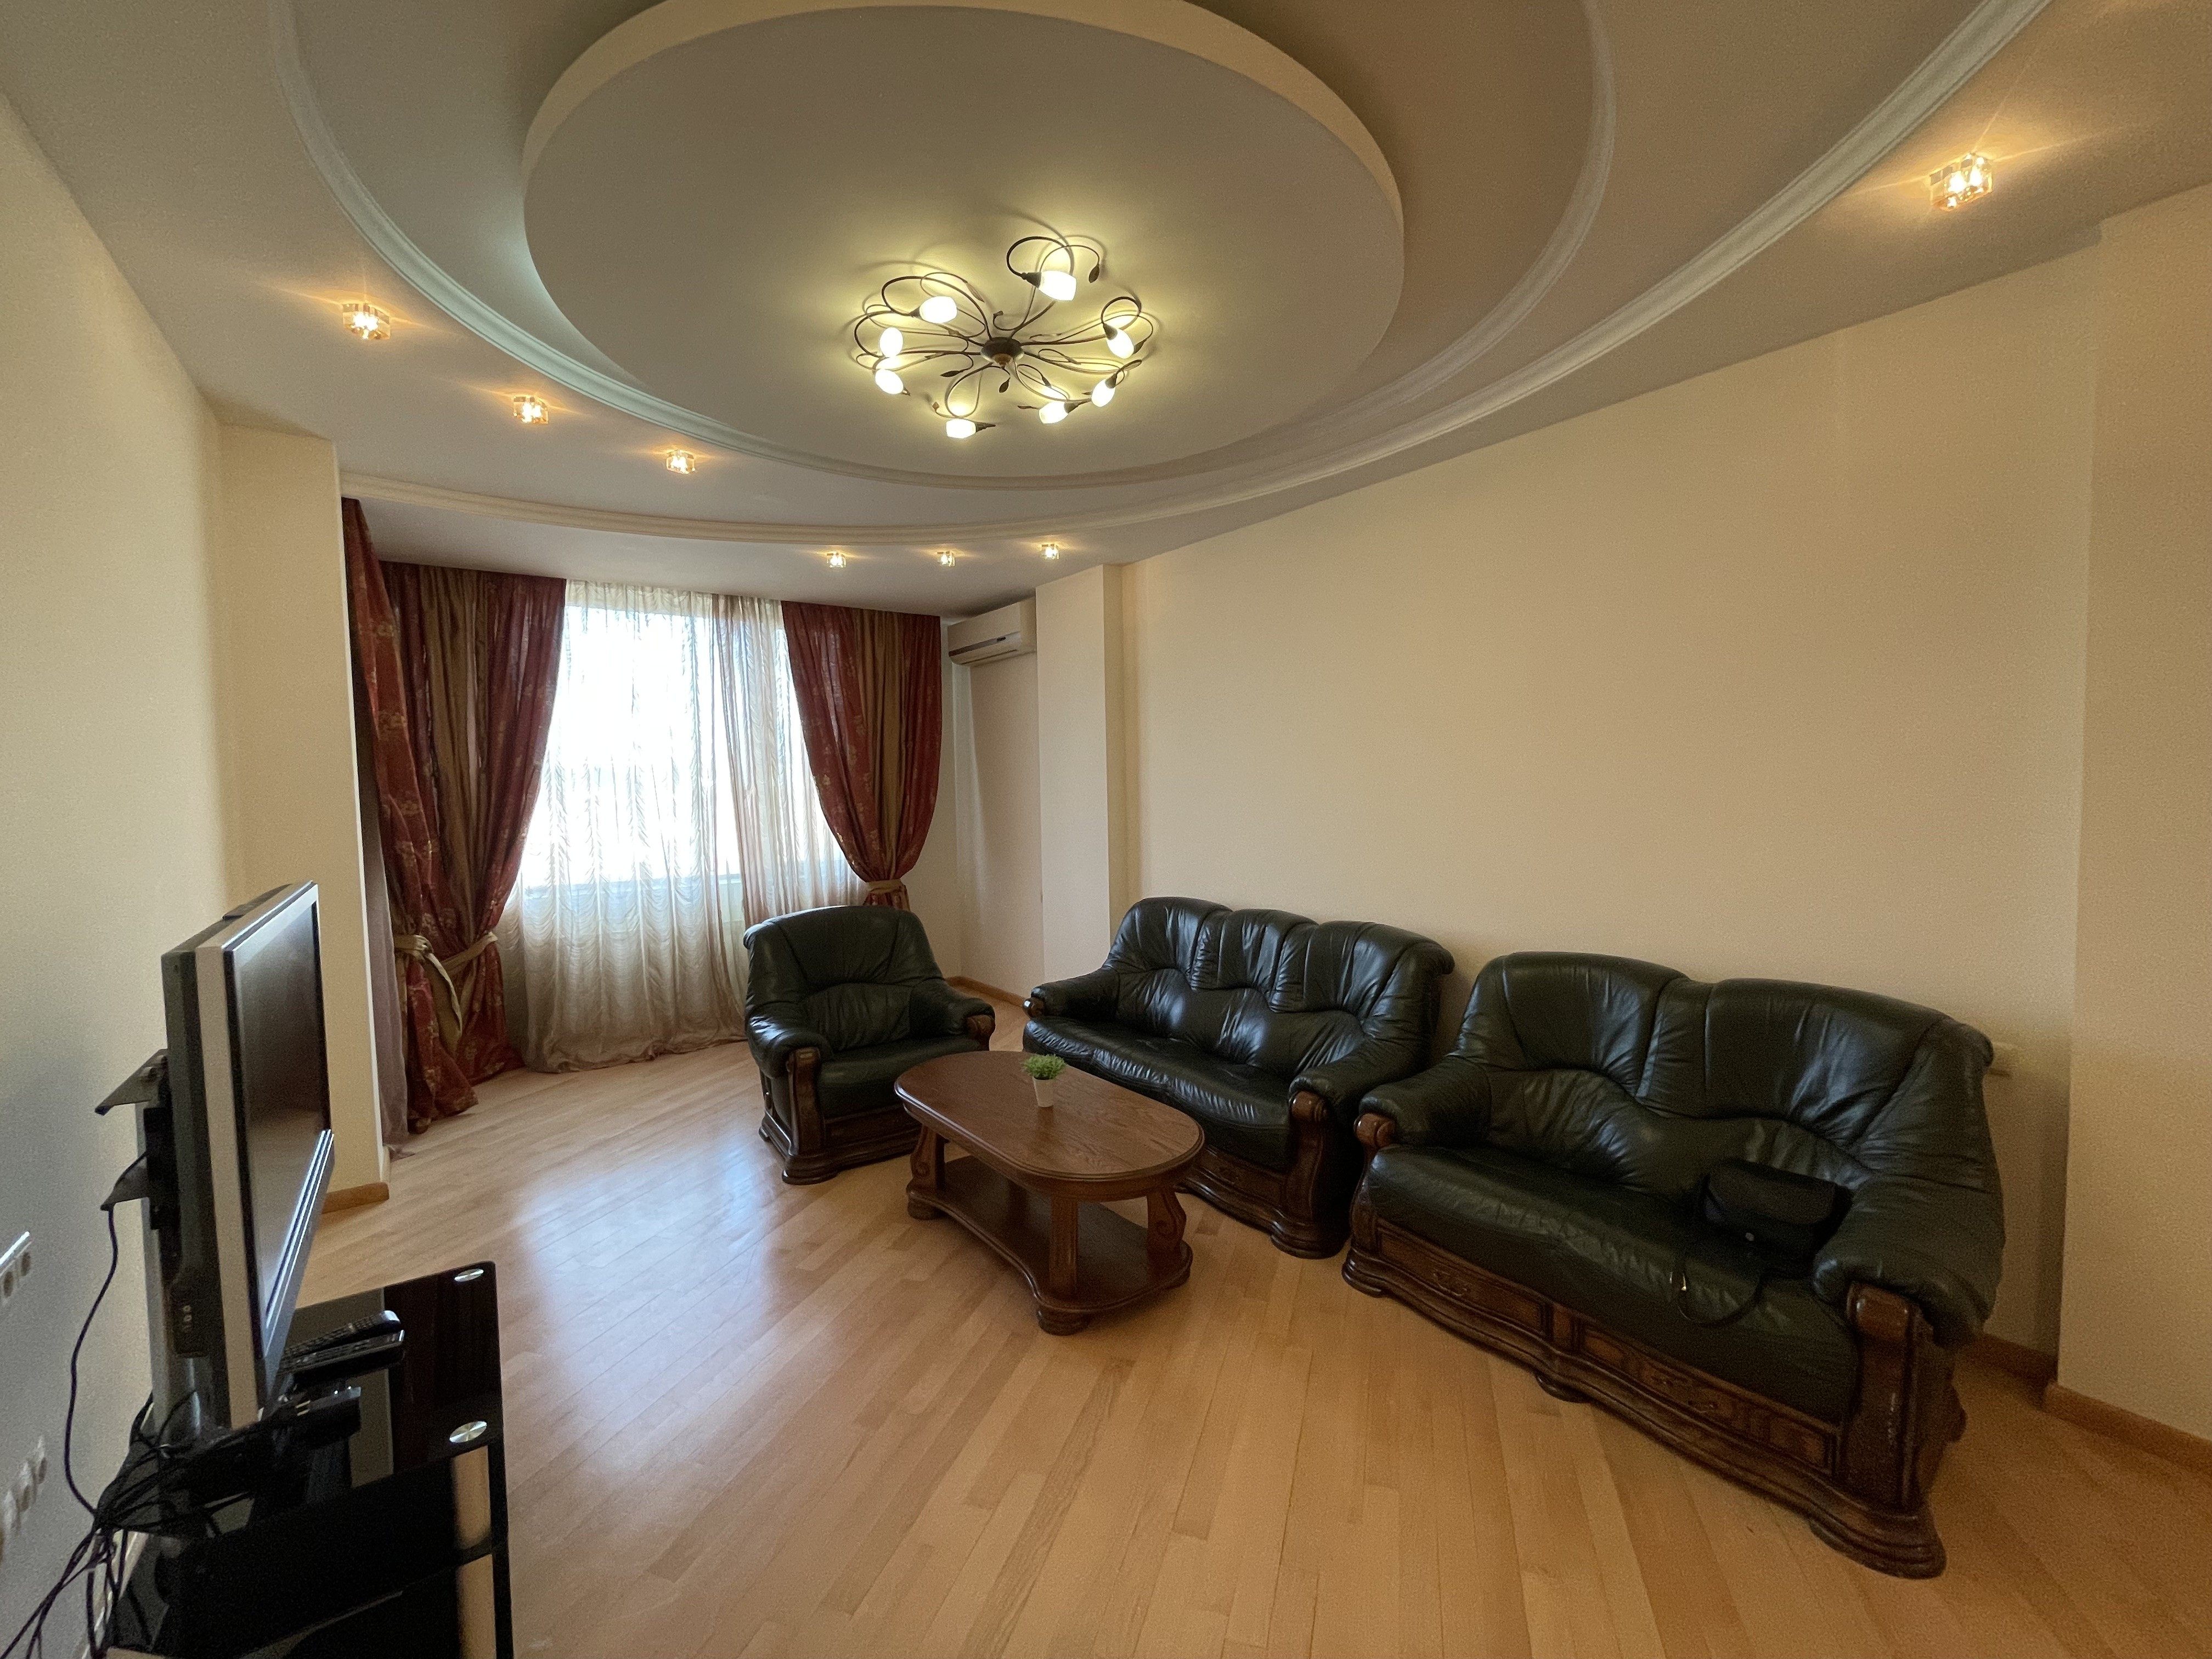 Large 4-Room Apartment For Rent in Vake